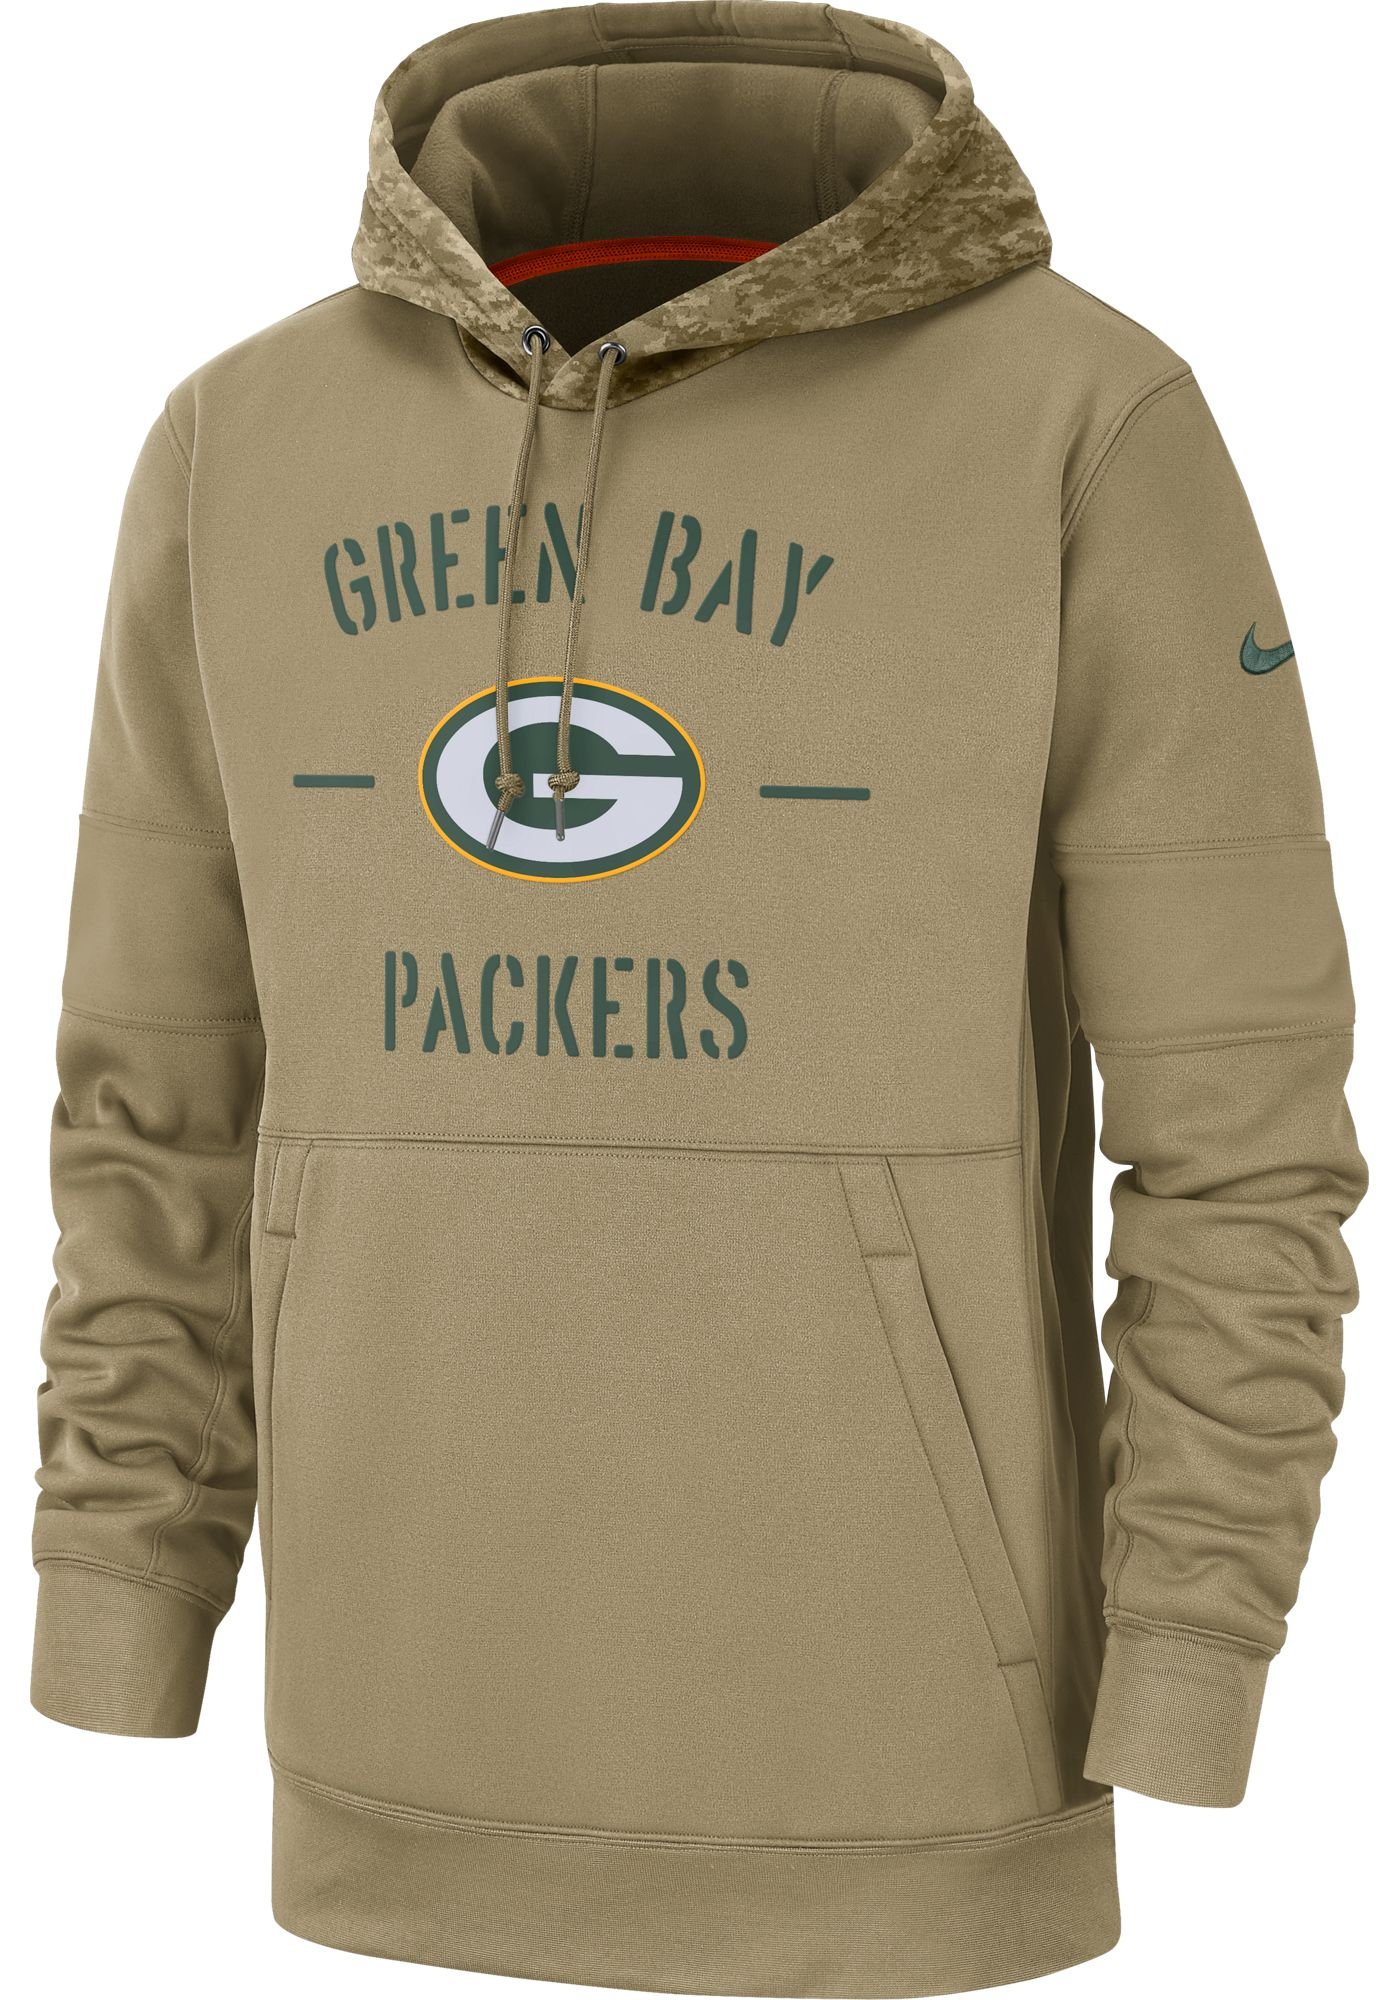 Nike Men's Salute to Service Green Bay Packers Therma-FIT Beige Camo Hoodie